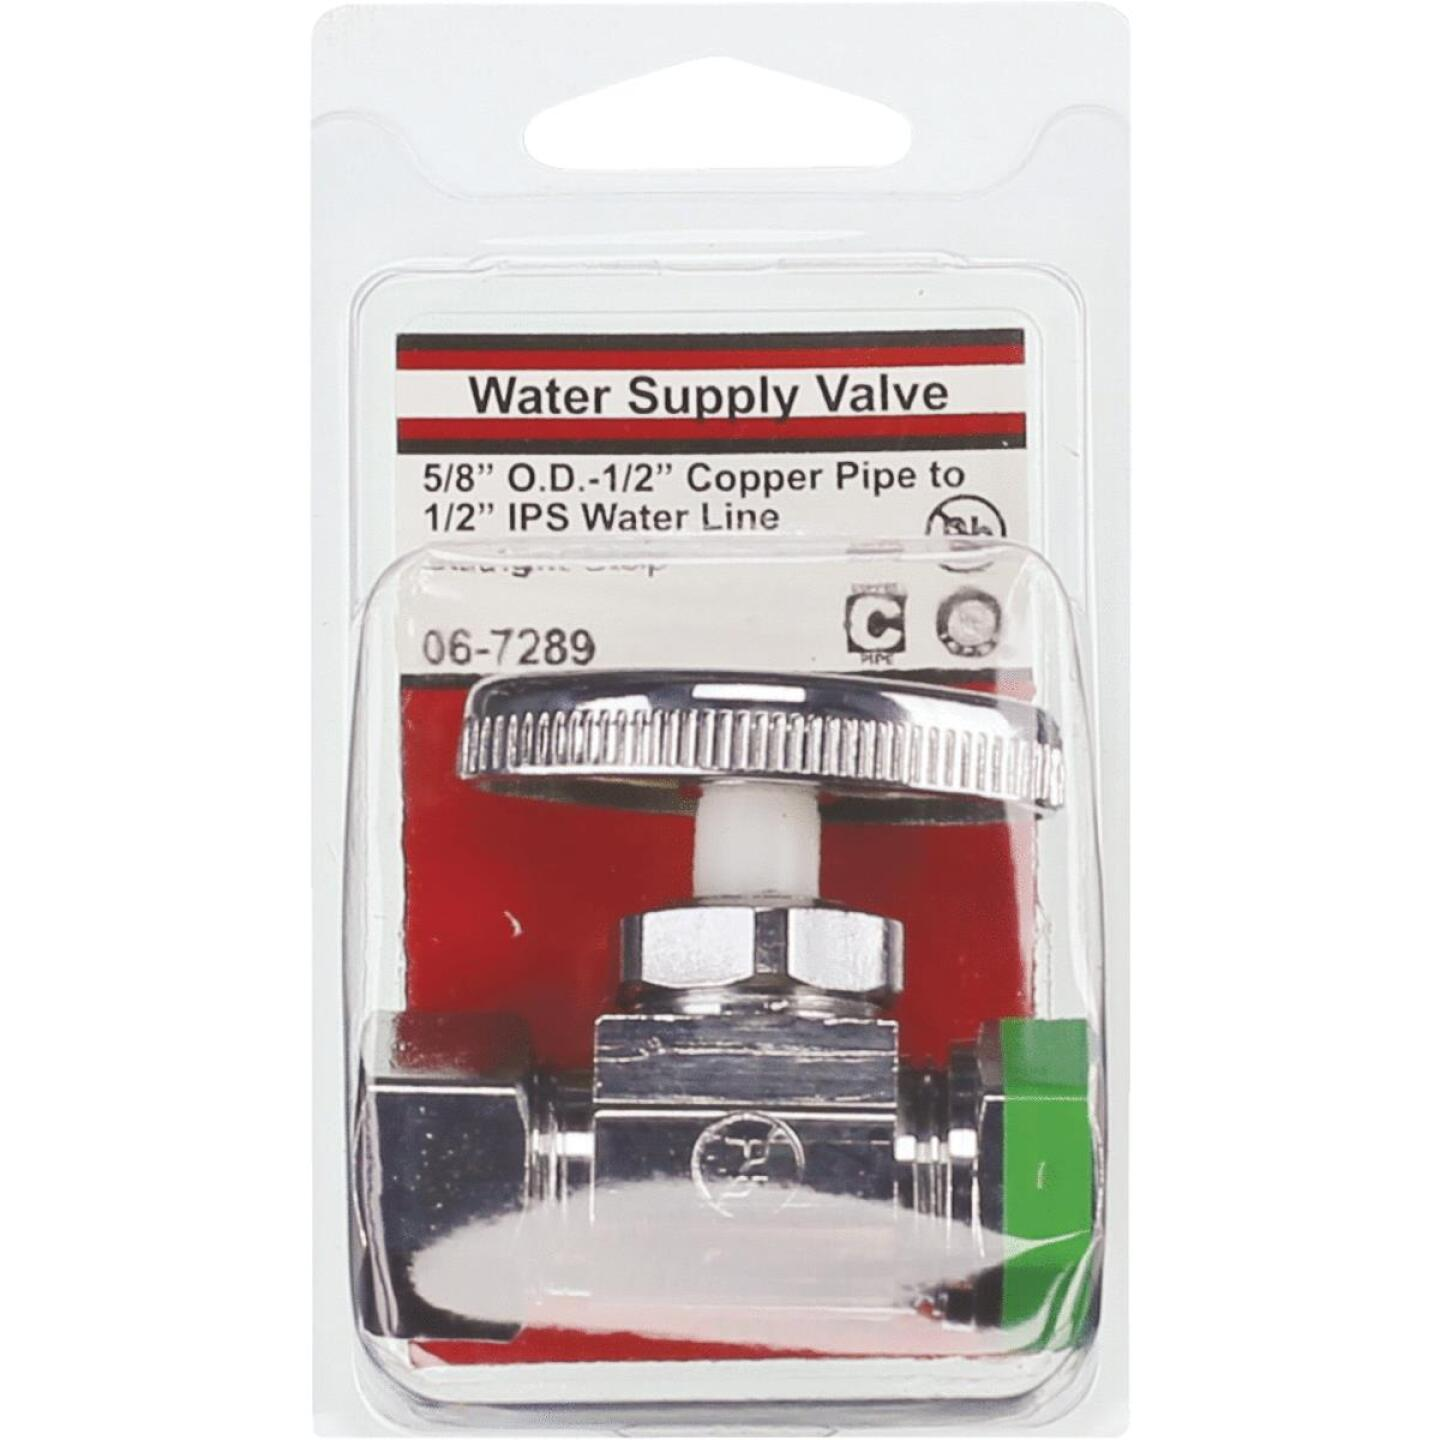 Lasco 5/8 In. Comp Inlet x 1/2 In. IP S-J Outlet Brass Straight Stop Valve Image 2